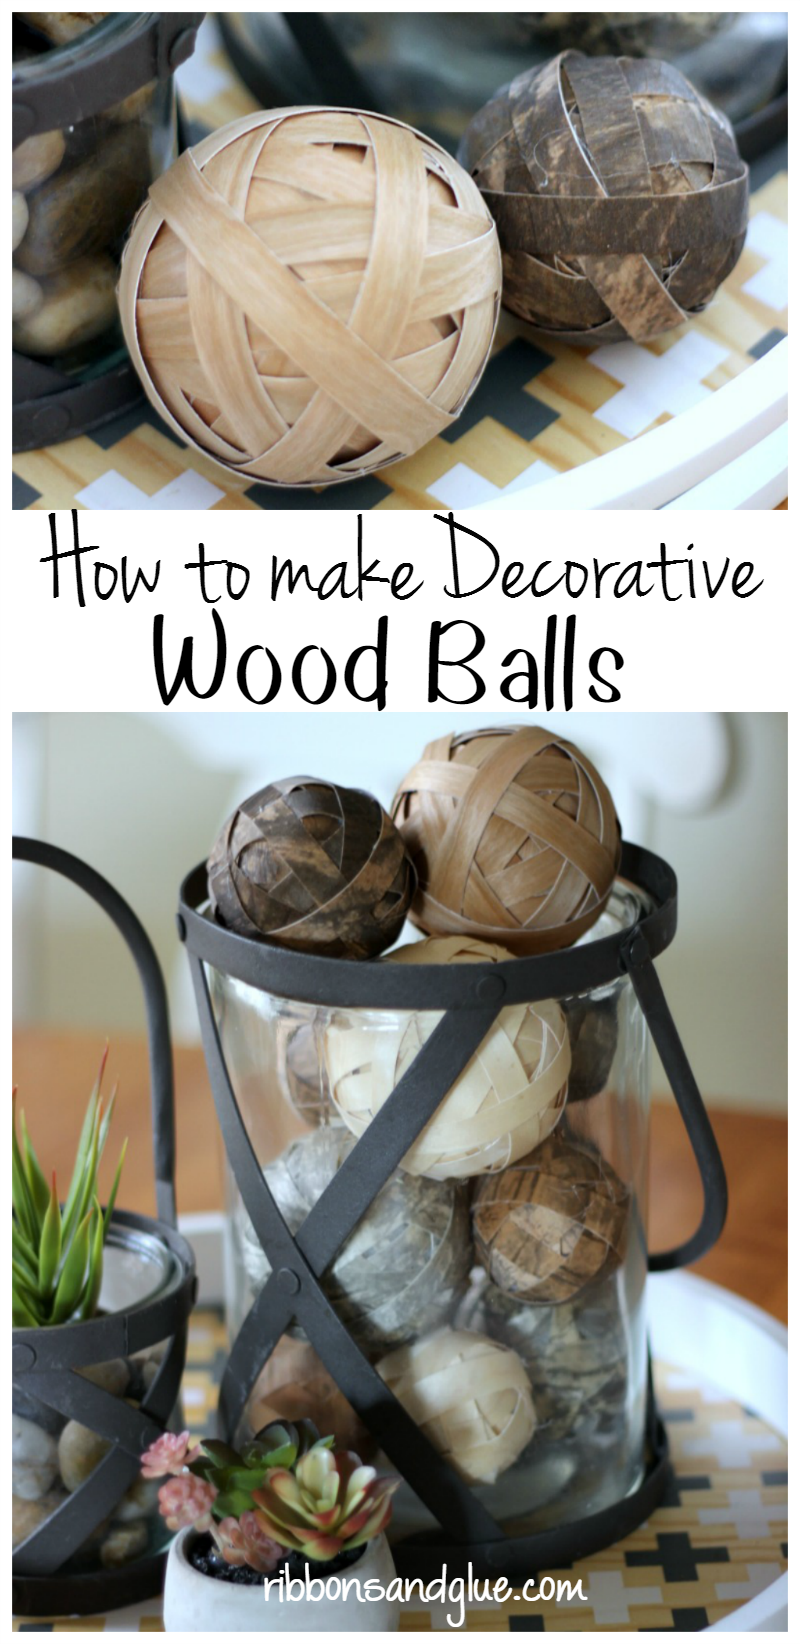 How to make decorative wood balls using wood veneer paper and foam balls. Easy, rustic, DIY table centerpiece piece idea.